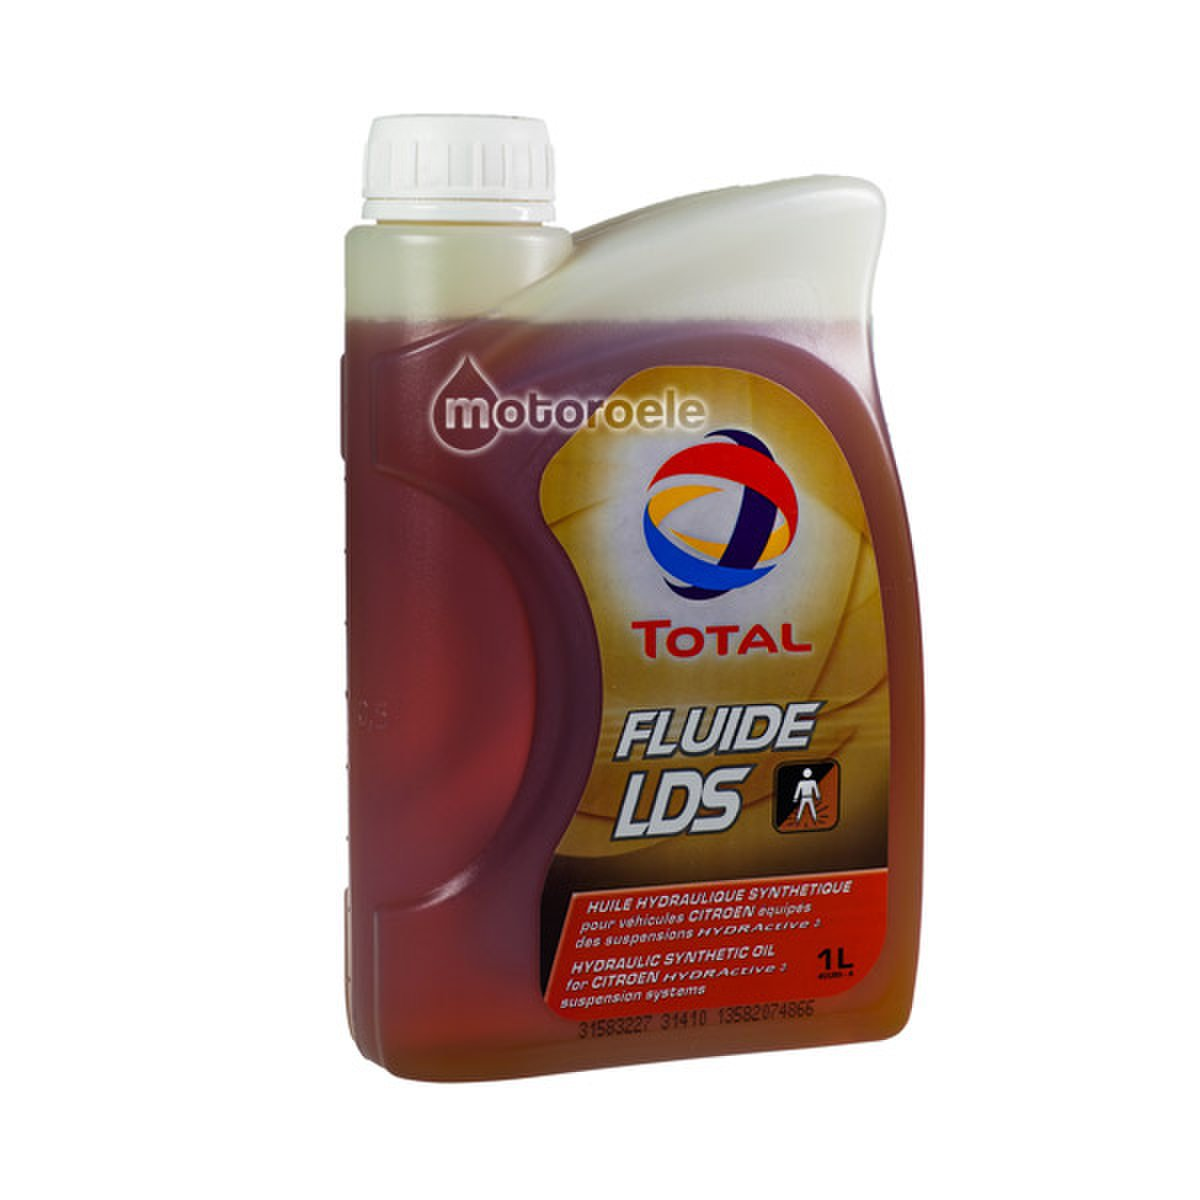 Total Fluide LDS Hydraulic Synthetic Oil 1 Litre 166224